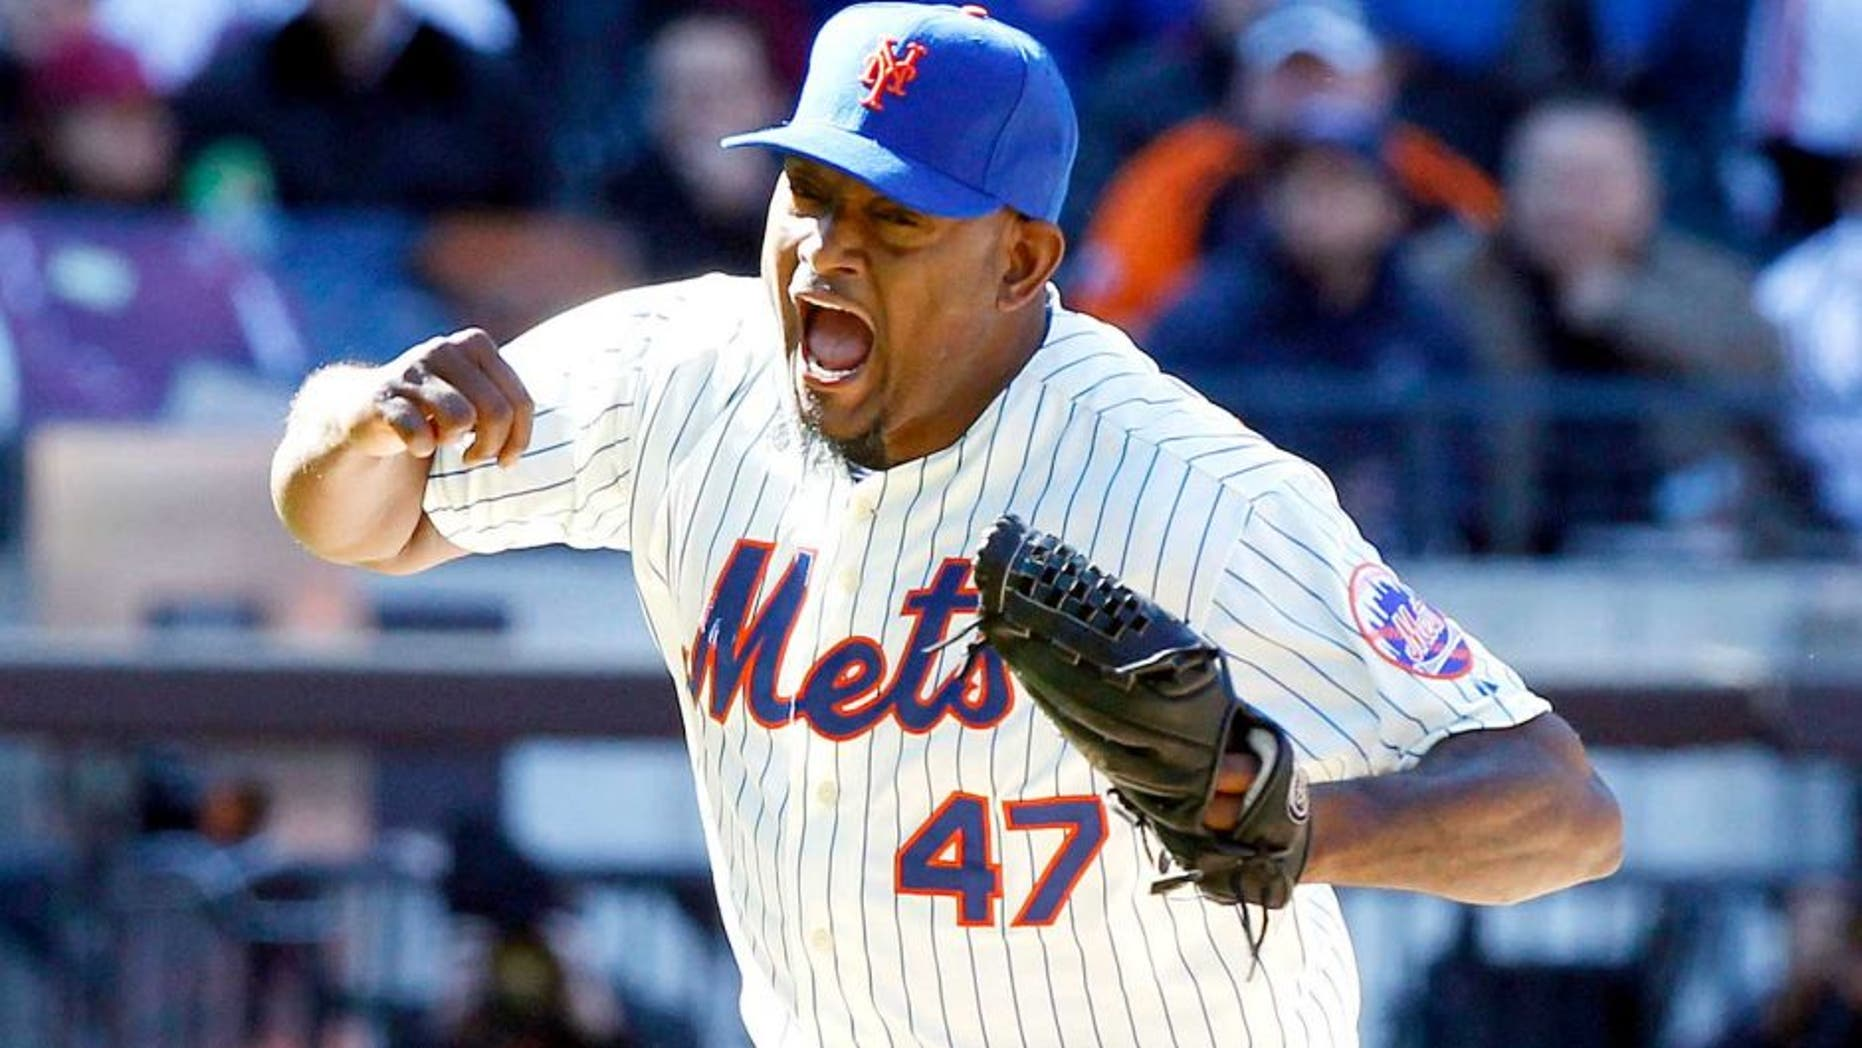 March 31, 2014; New York, NY, USA; New York Mets relief pitcher Jose Valverde (47) reacts as he strikes out Washington Nationals third baseman Ryan Zimmerman (not pictured) with the bases loaded to end the 7th inning of an opening day baseball game at Citi Field. Mandatory Credit: William Perlman/THE STAR-LEDGER via USA TODAY Sports